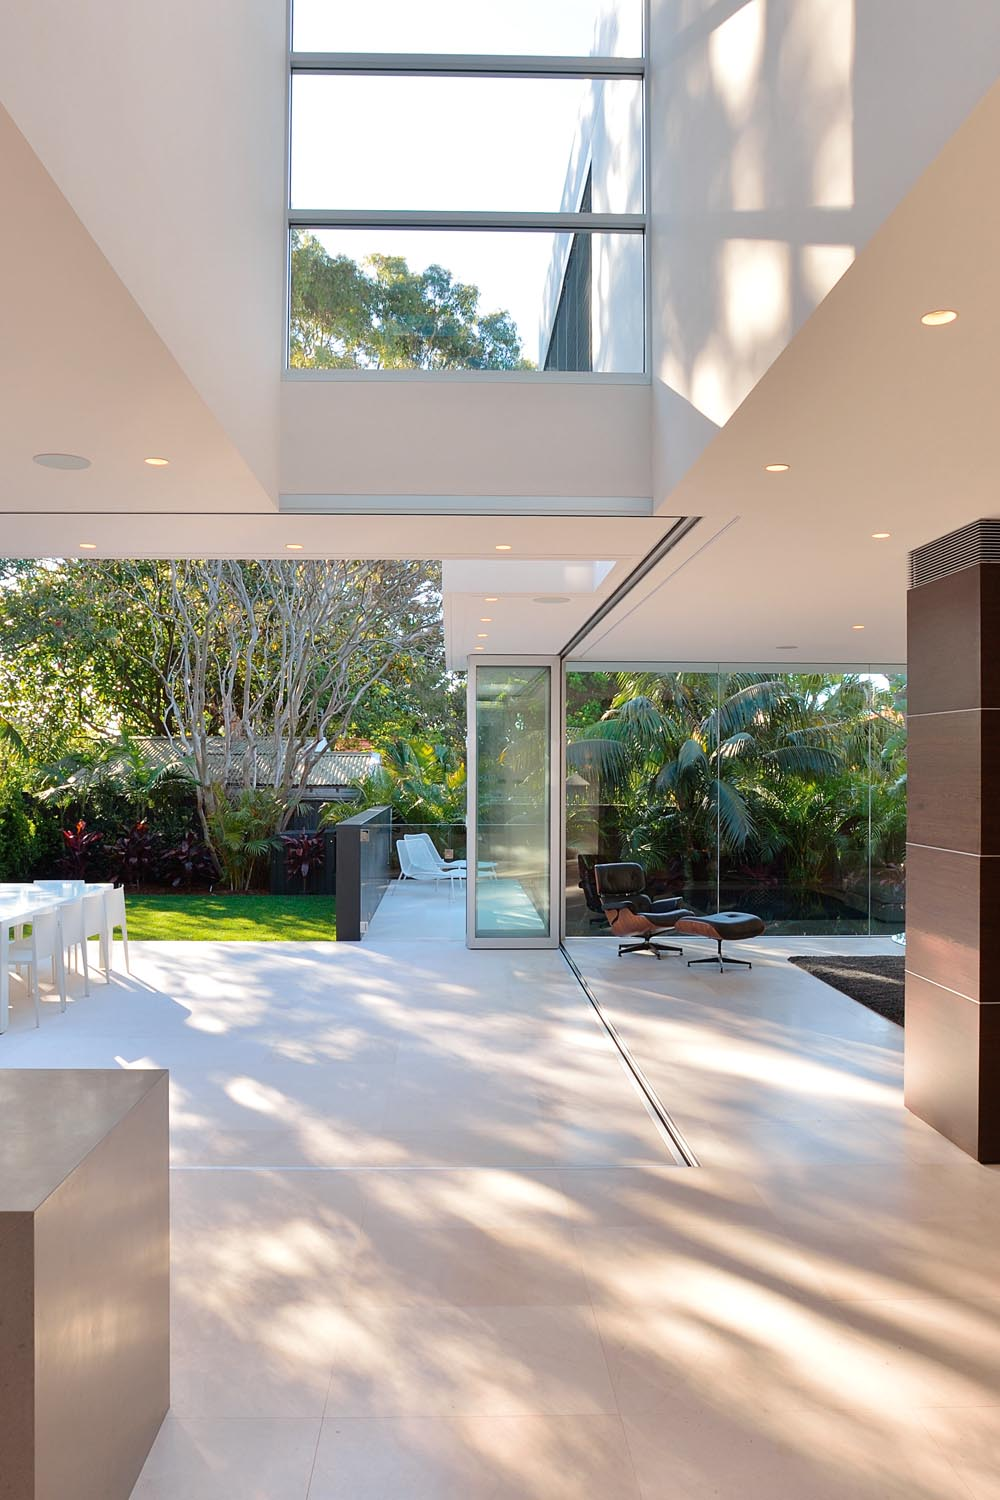 The ground floor can easily become an alfresco entertaining space with the folding glass windows